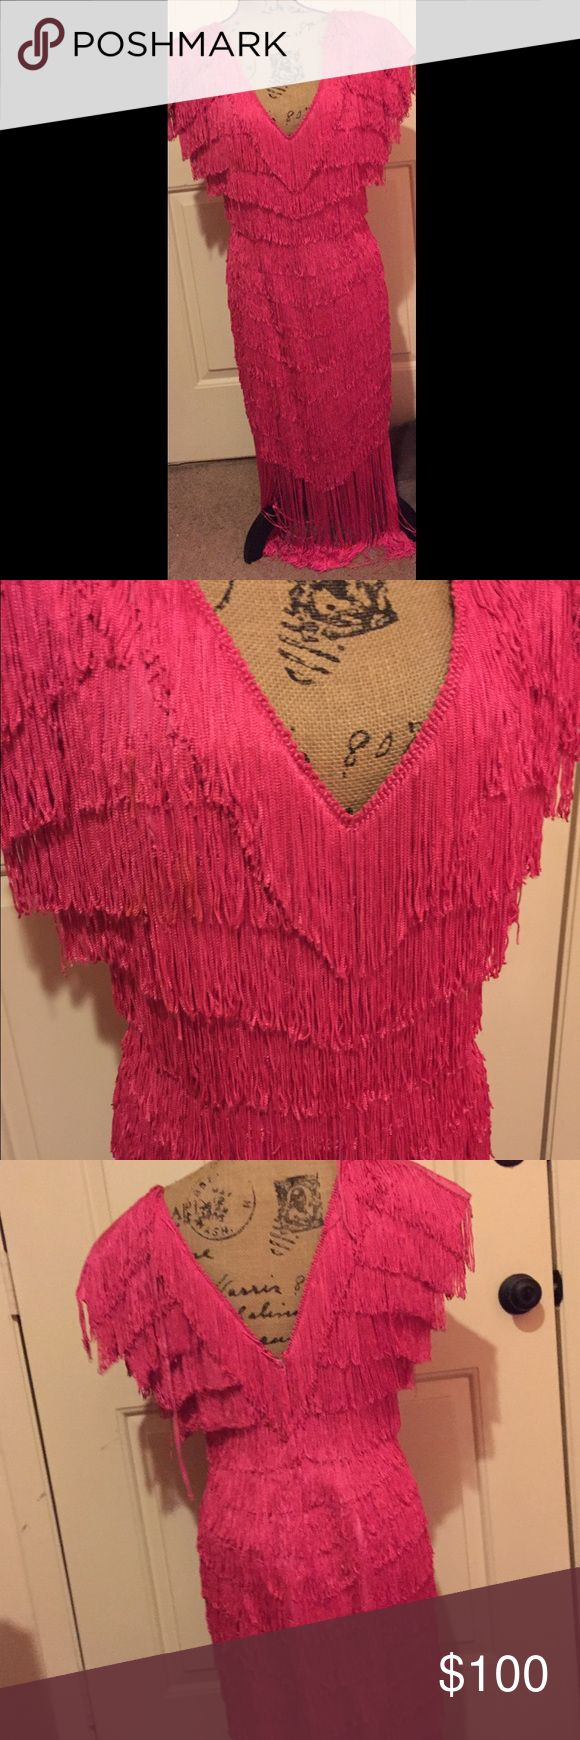 """TD4 by Eletra flapper dress Absolutely beautiful! Vintage inspired. Length is approx 32"""" not including lining or fringe.!Size 9/10. 👺NO TRADES DONT ASK! ✌🏼️Transactions through posh only!  😻 friendly home 💃🏼 if you ask a question about an item, please be ready to purchase (serious buyers only) ❤️Color may vary in person! 💗⭐️Bundles of 5+ LISTINGS are 5️⃣0️⃣% off! ⭐️buyer pays extra shipping if likely to be over 5 lbs 🙋thanks for looking! Dresses"""